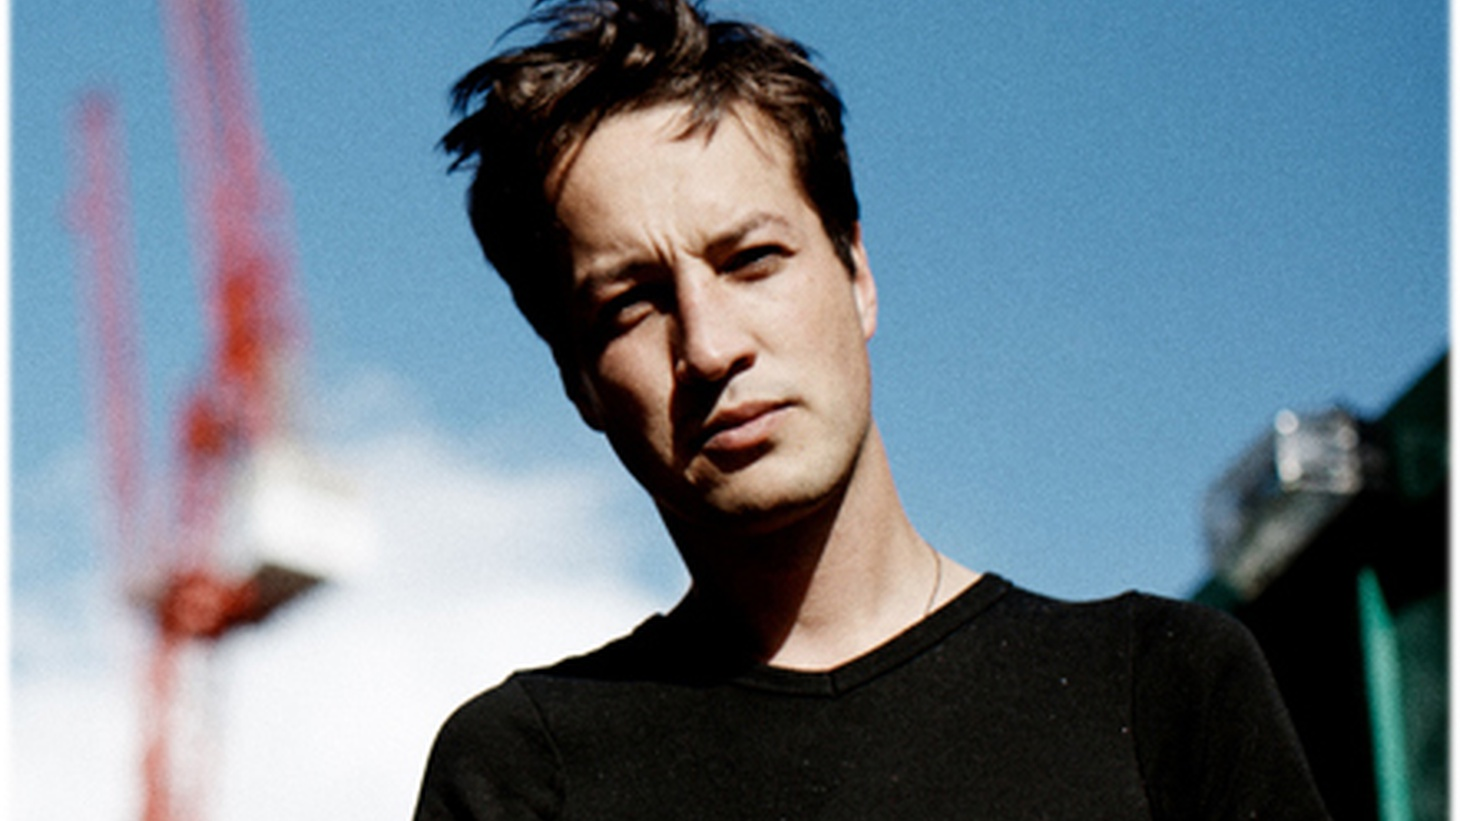 New Zealand native Marlon Williams created his sophomore album Make Way For Love in the wake of a break up (with fellow musician Aldous Harding, who actually duets with him on one of the songs!).